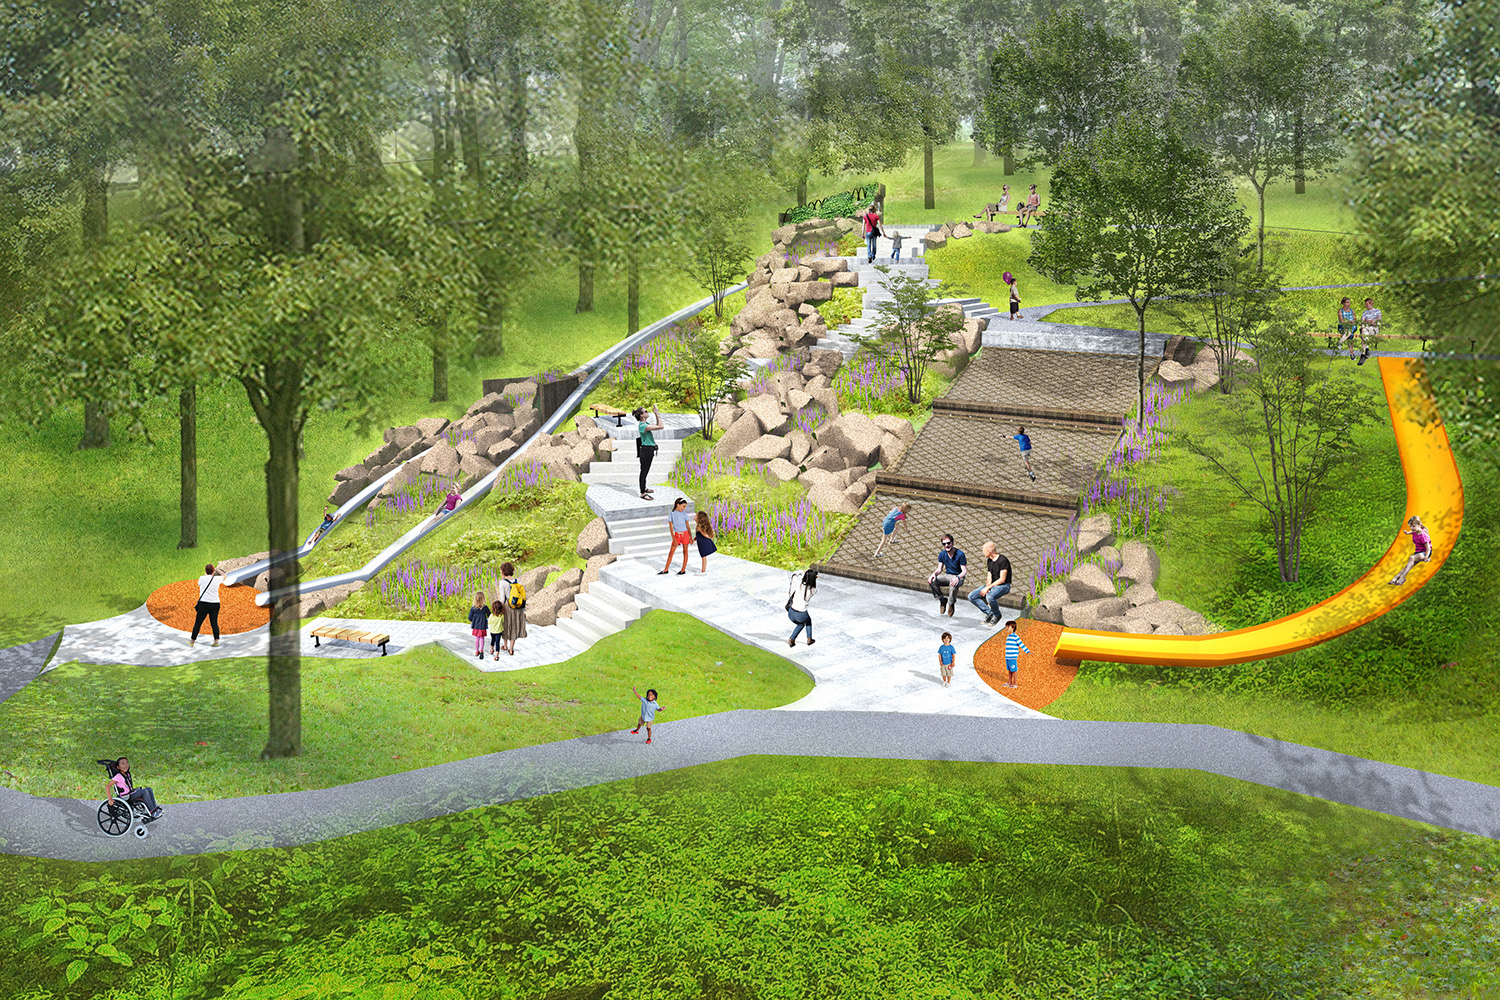 Concept image of the Mammoth Park Giant Slide.